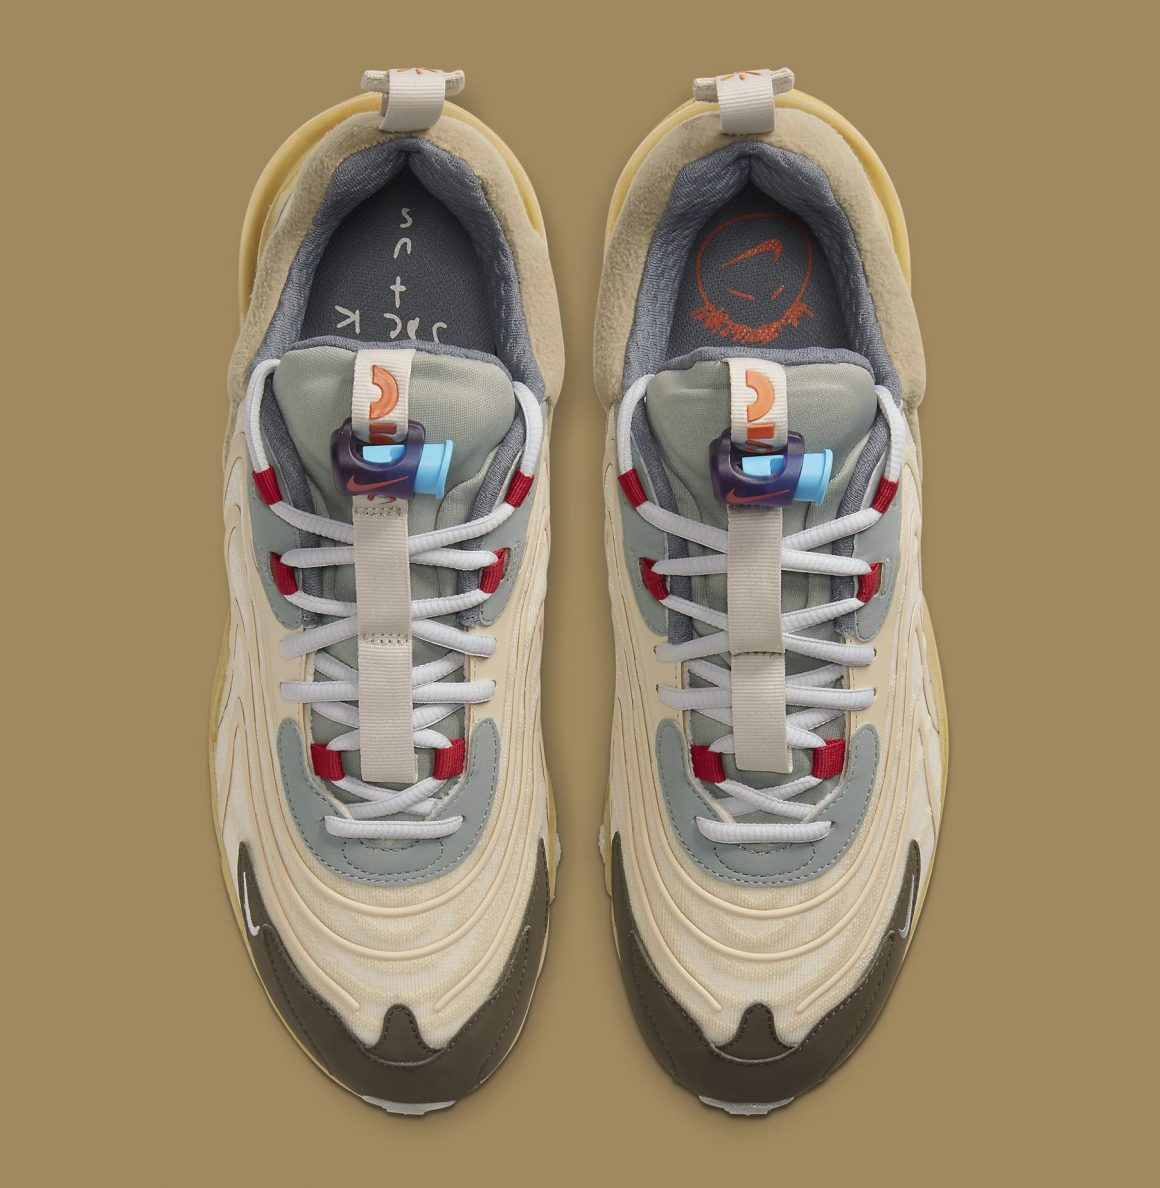 Travis Scott x Nike Air Max 270 React ''Cactus Trails'' - CT2864-200